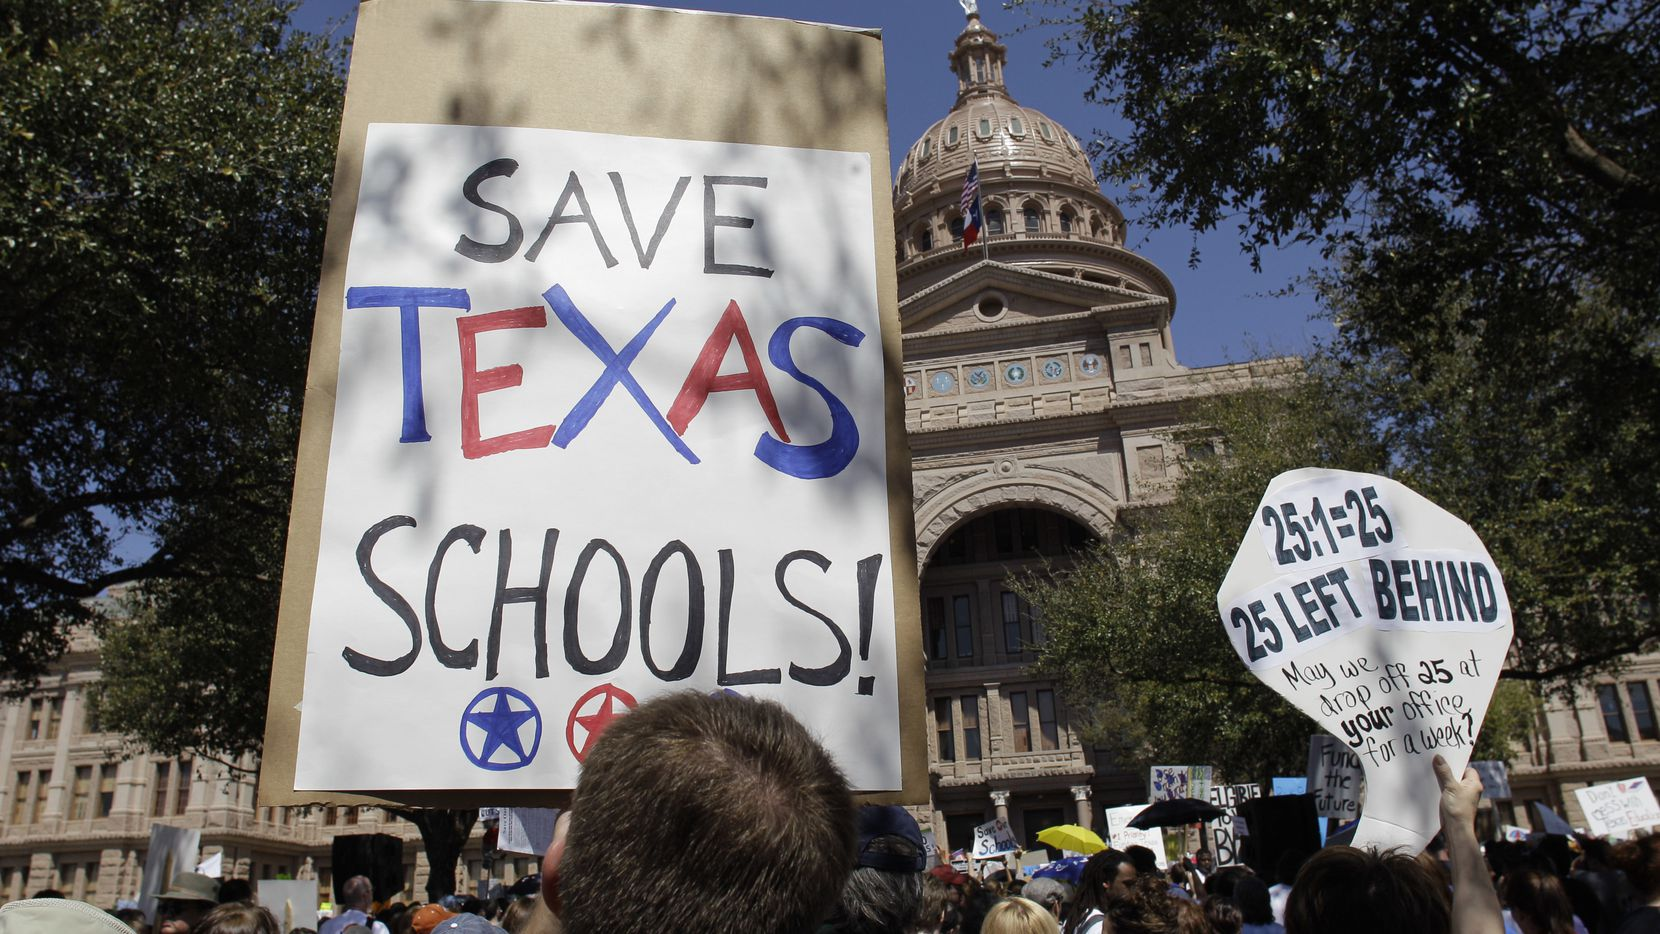 Teachers, students and parents take part in a school rally, Saturday, March 12, 2011, in Austin, Texas. Thousands rallied at the Texas Capitol on Saturday to protest $10 billion in education cuts they say will ruin public schools. (AP Photo/Eric Gay)